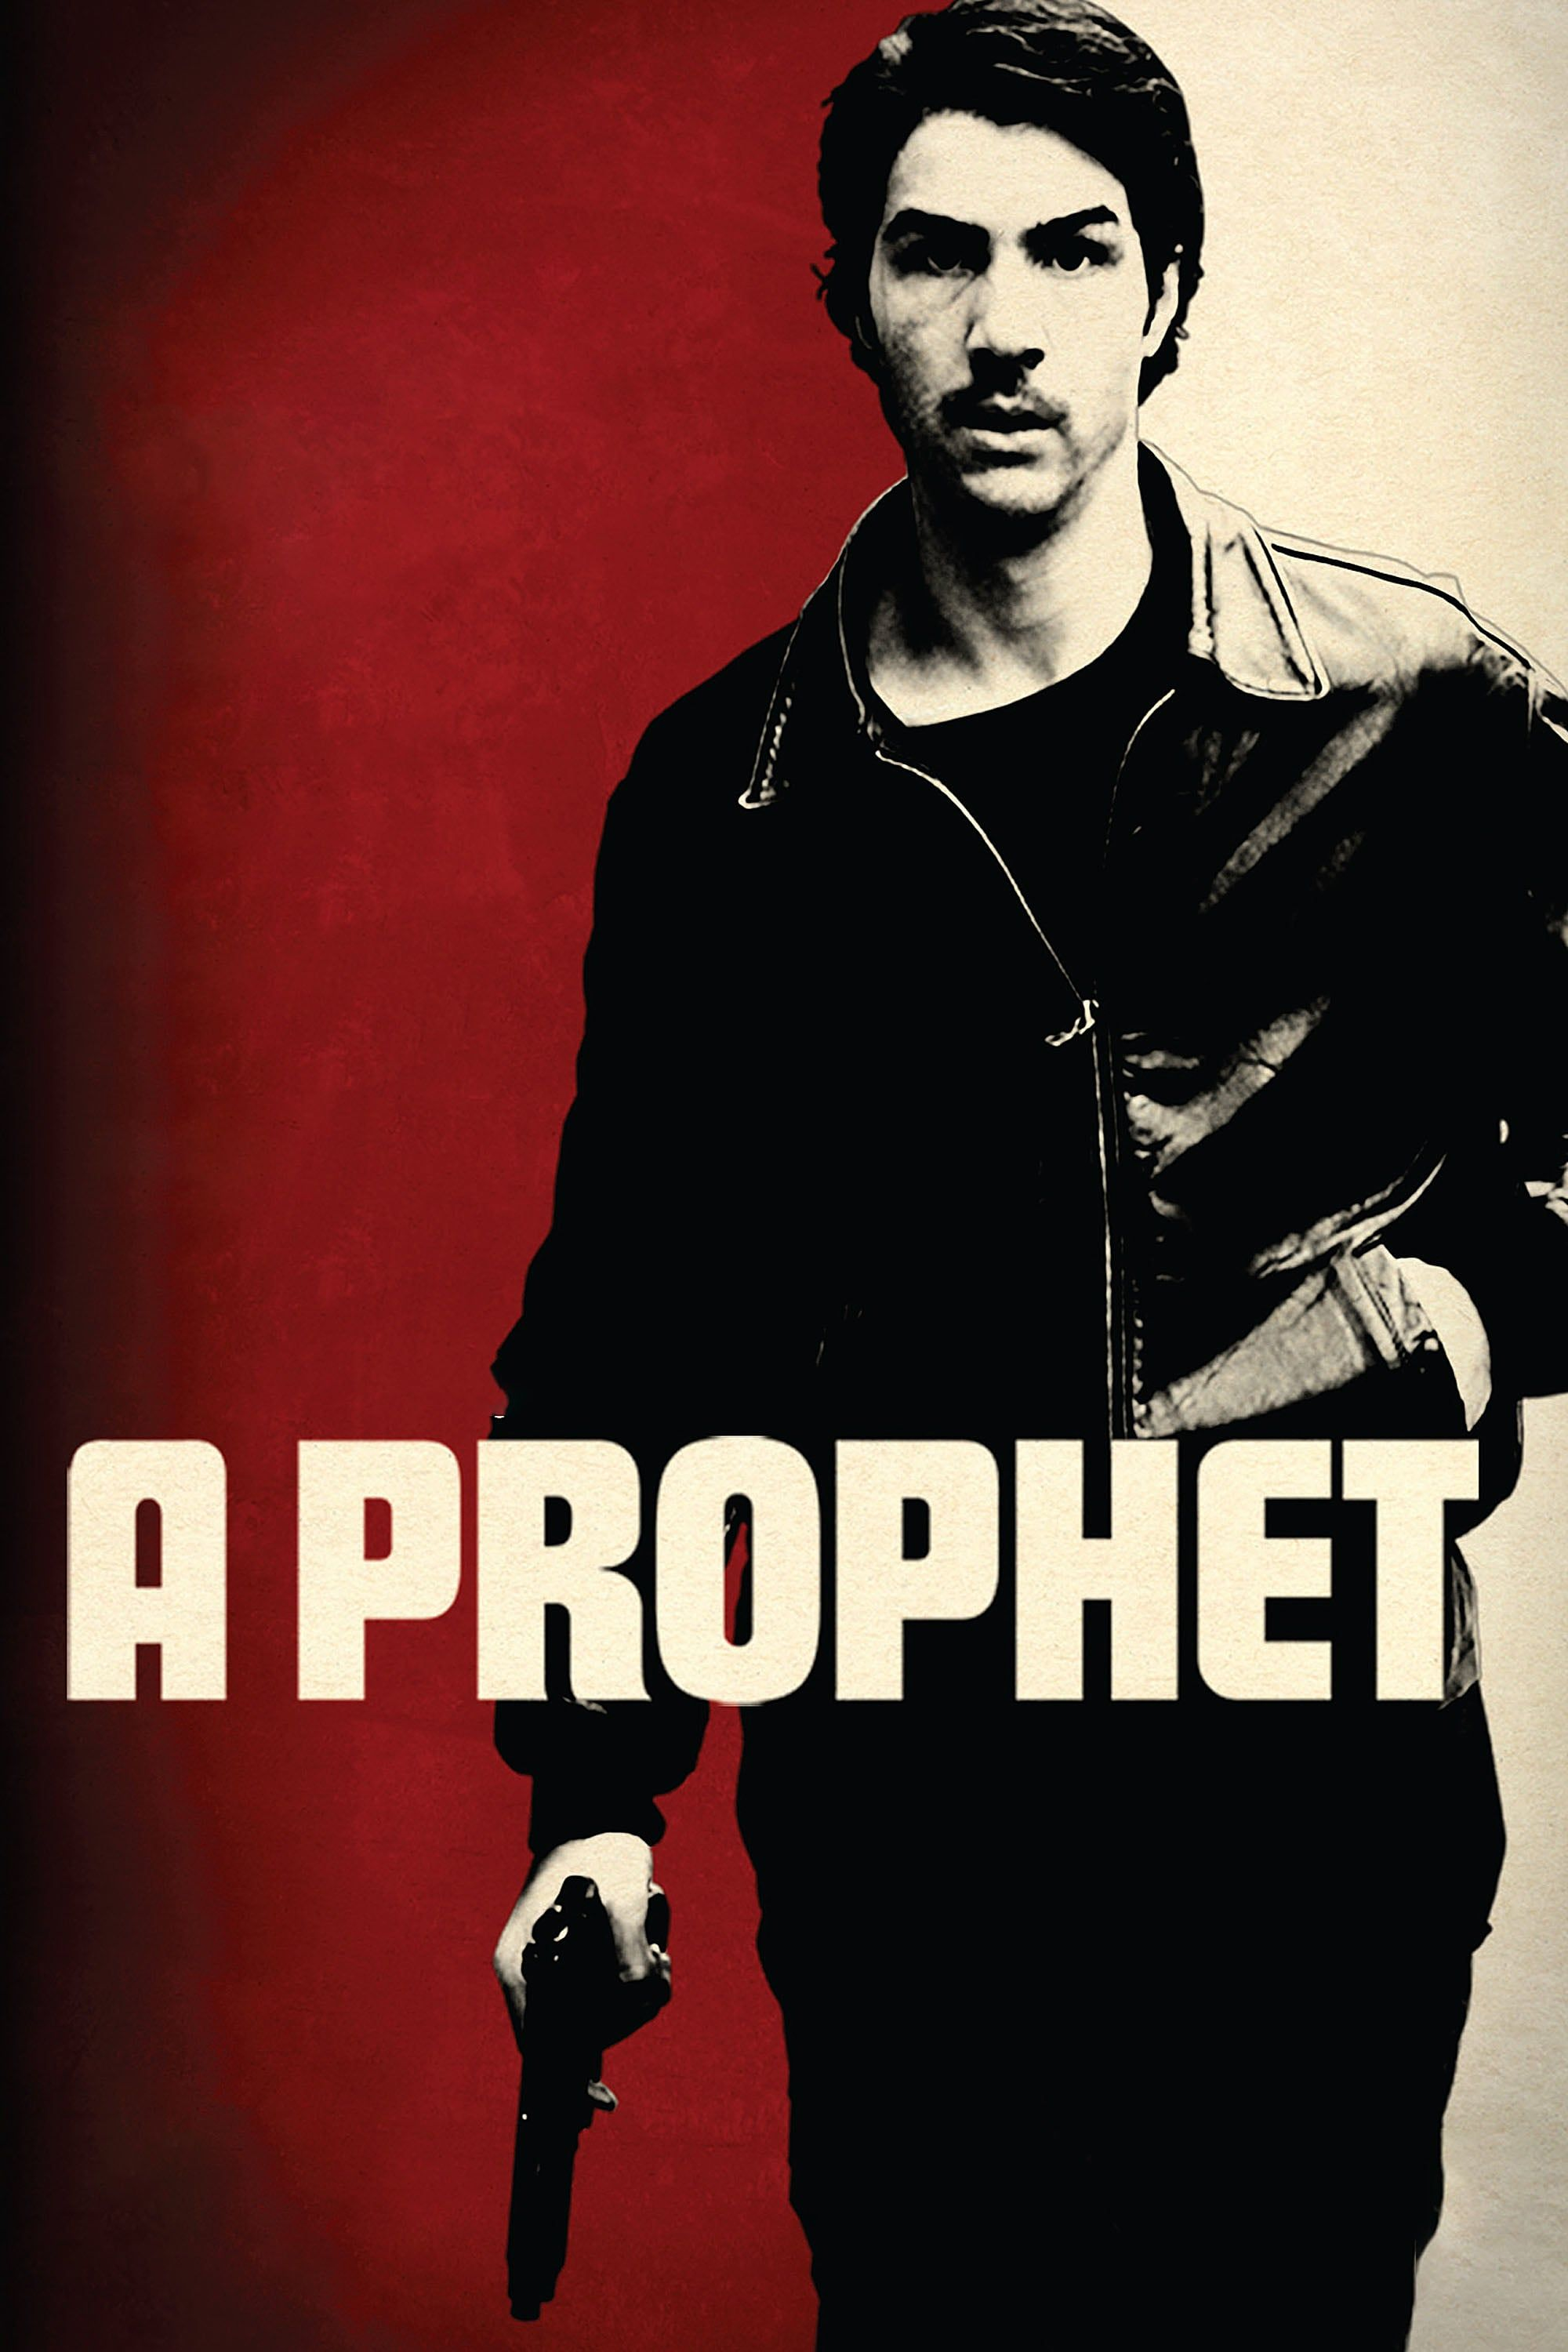 Un Prophete A Prophet Poster Artwork 2009 Plot A Young Arab Man Tahar Rahim Is Sent To A French Prison Where He Is Taken Under The Wing Of Powerful C